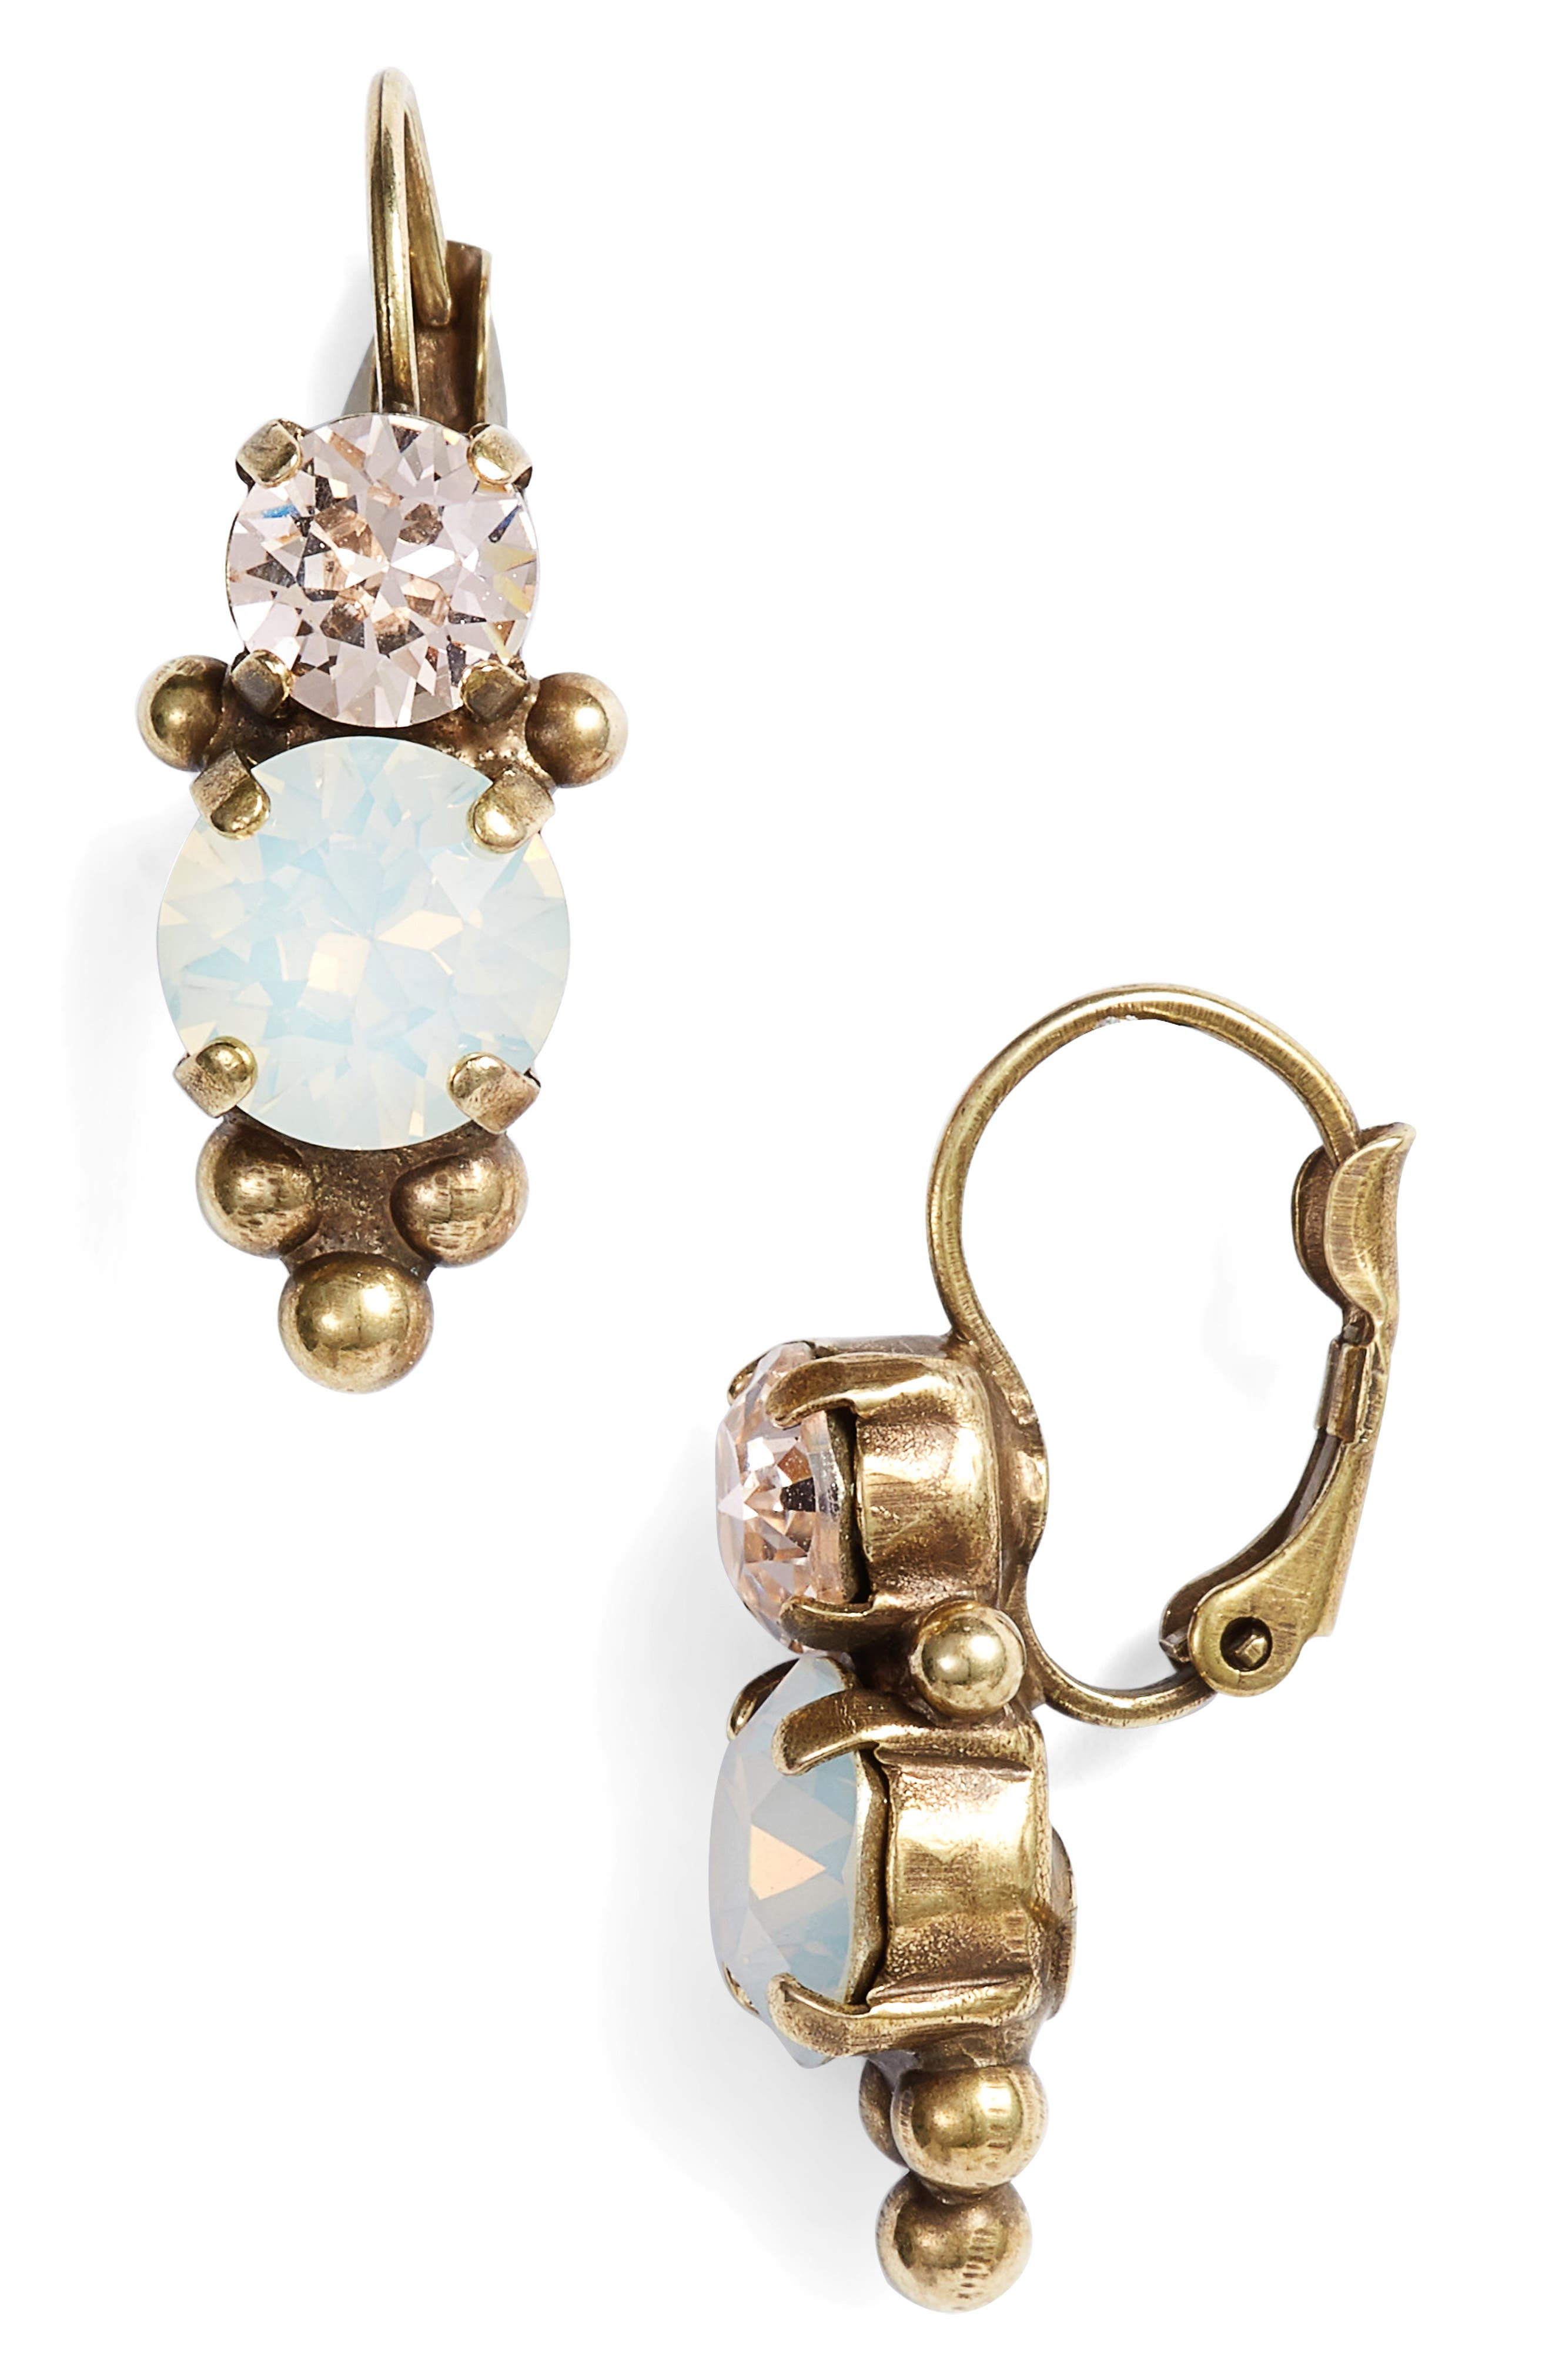 Ornate Crystal Rounds Drop Earrings,                             Main thumbnail 1, color,                             WHITE